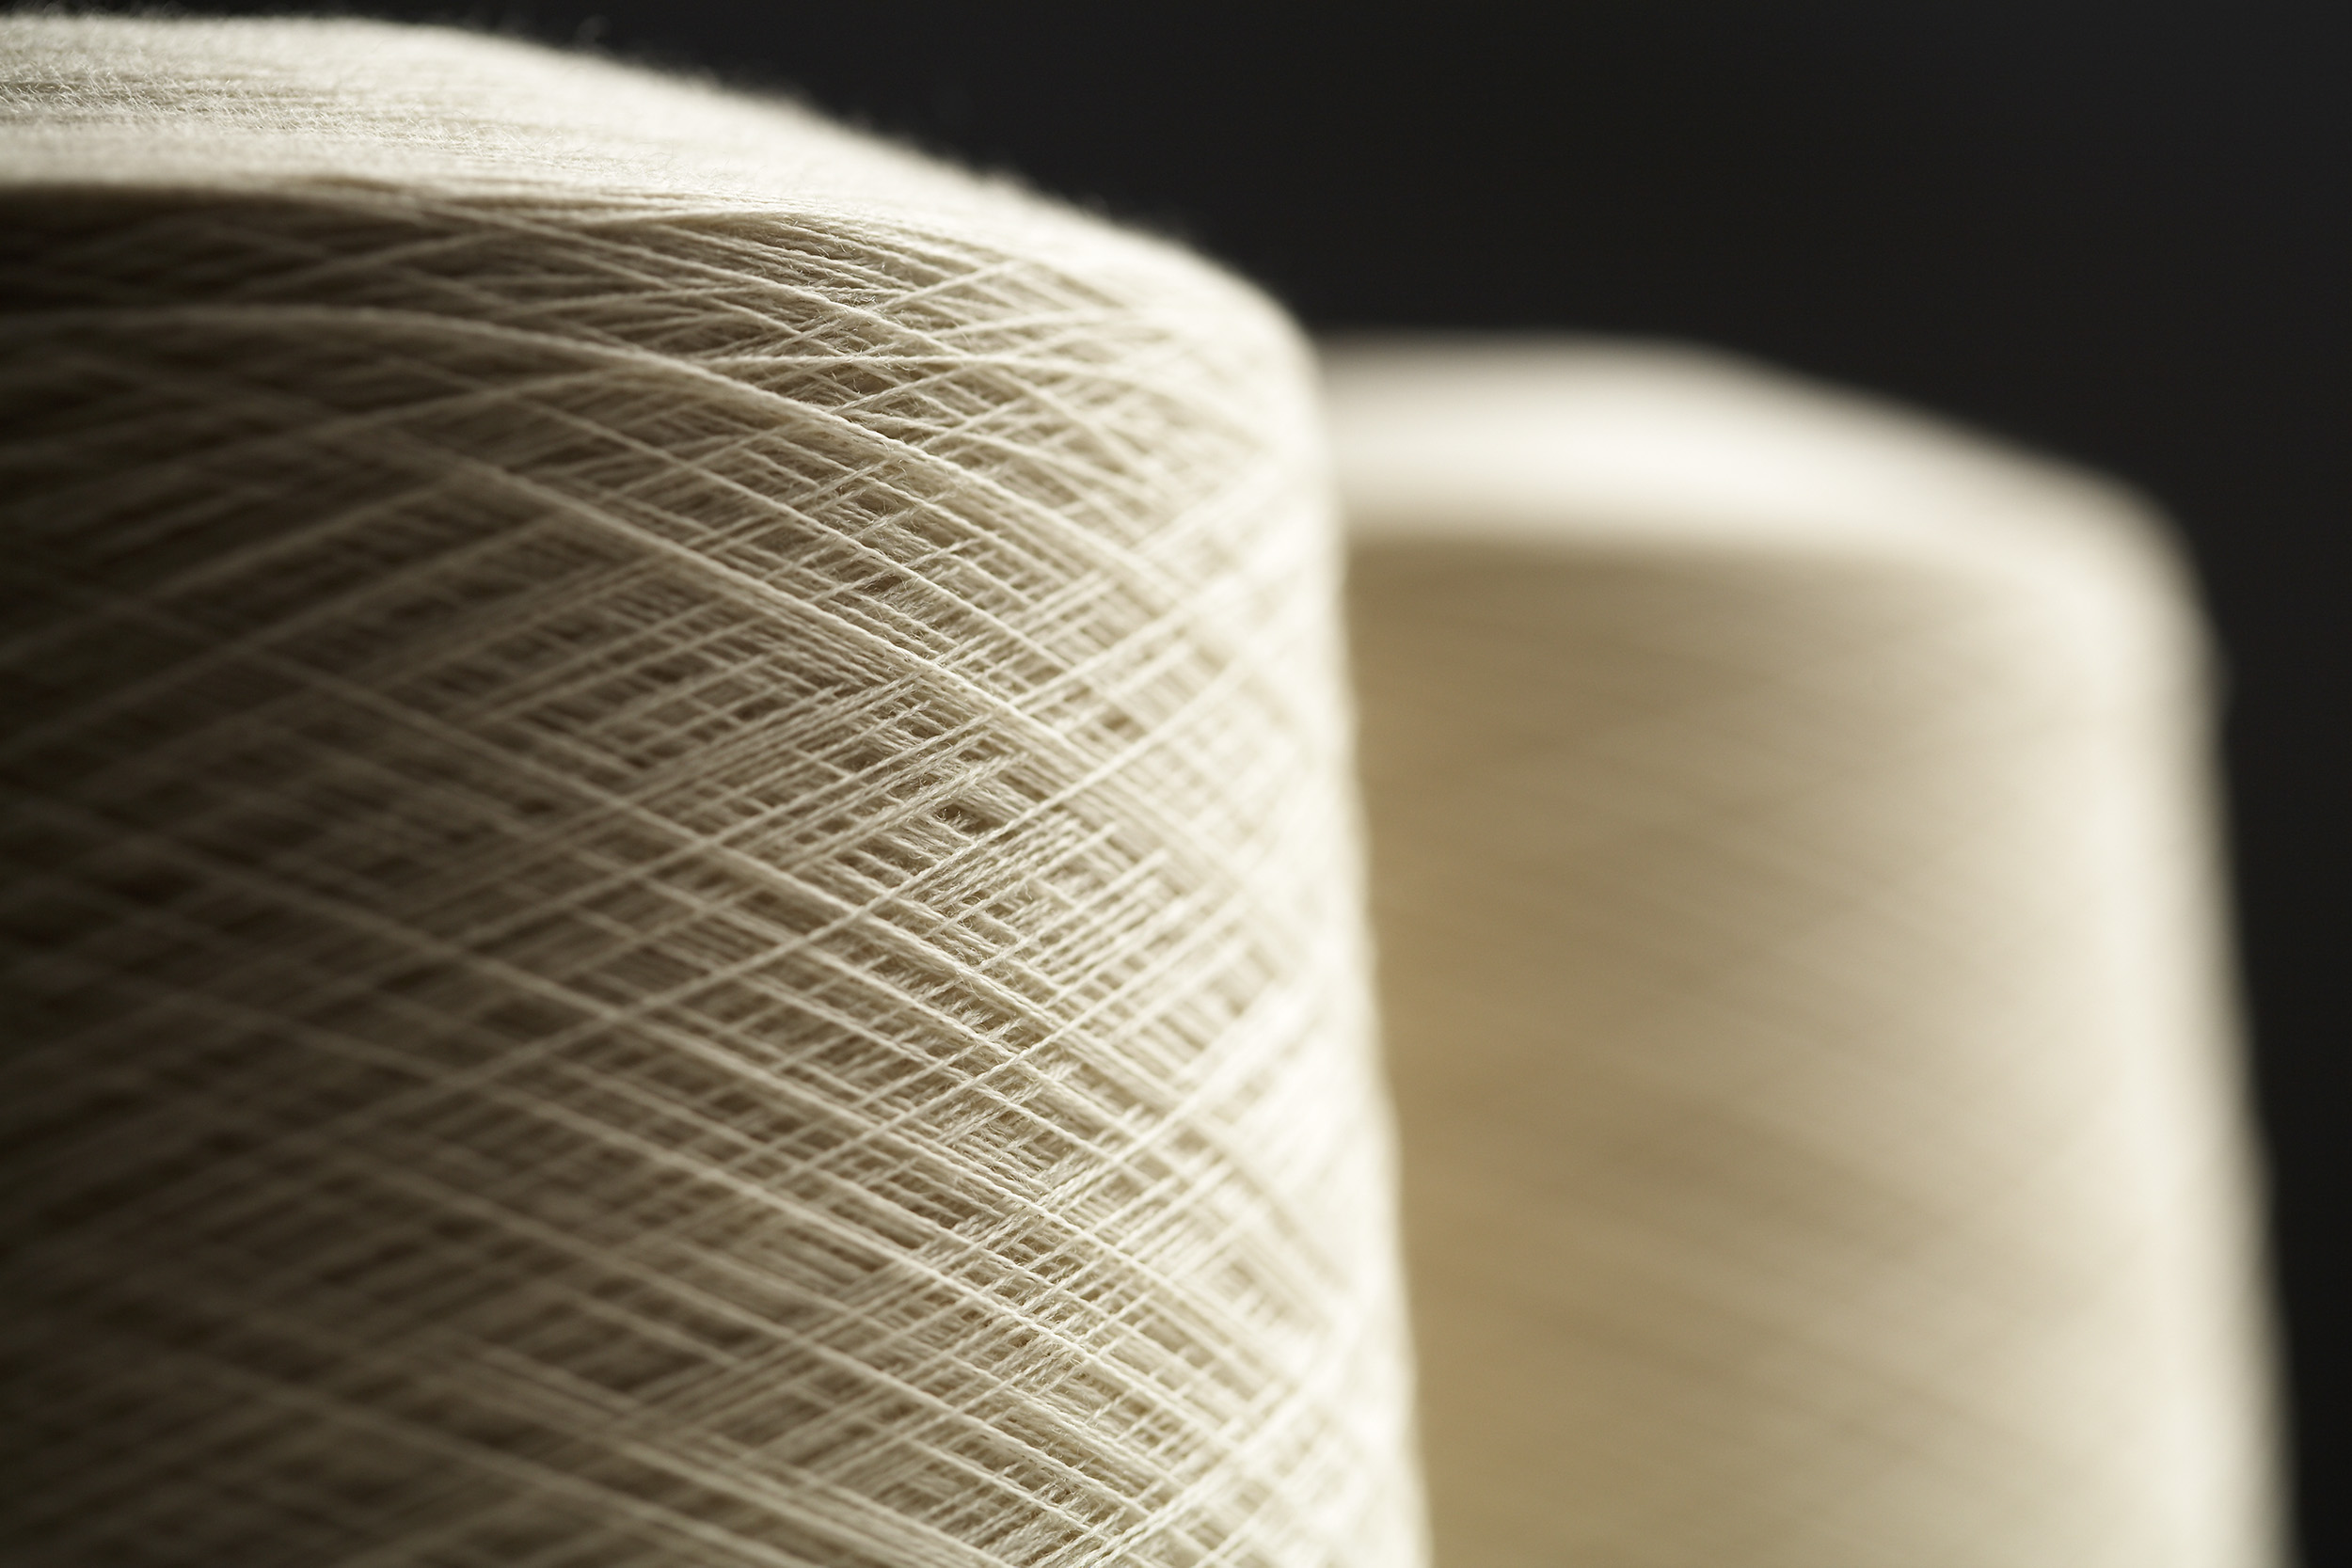 Skeins of yarn. Paul Scott Photography, industry.